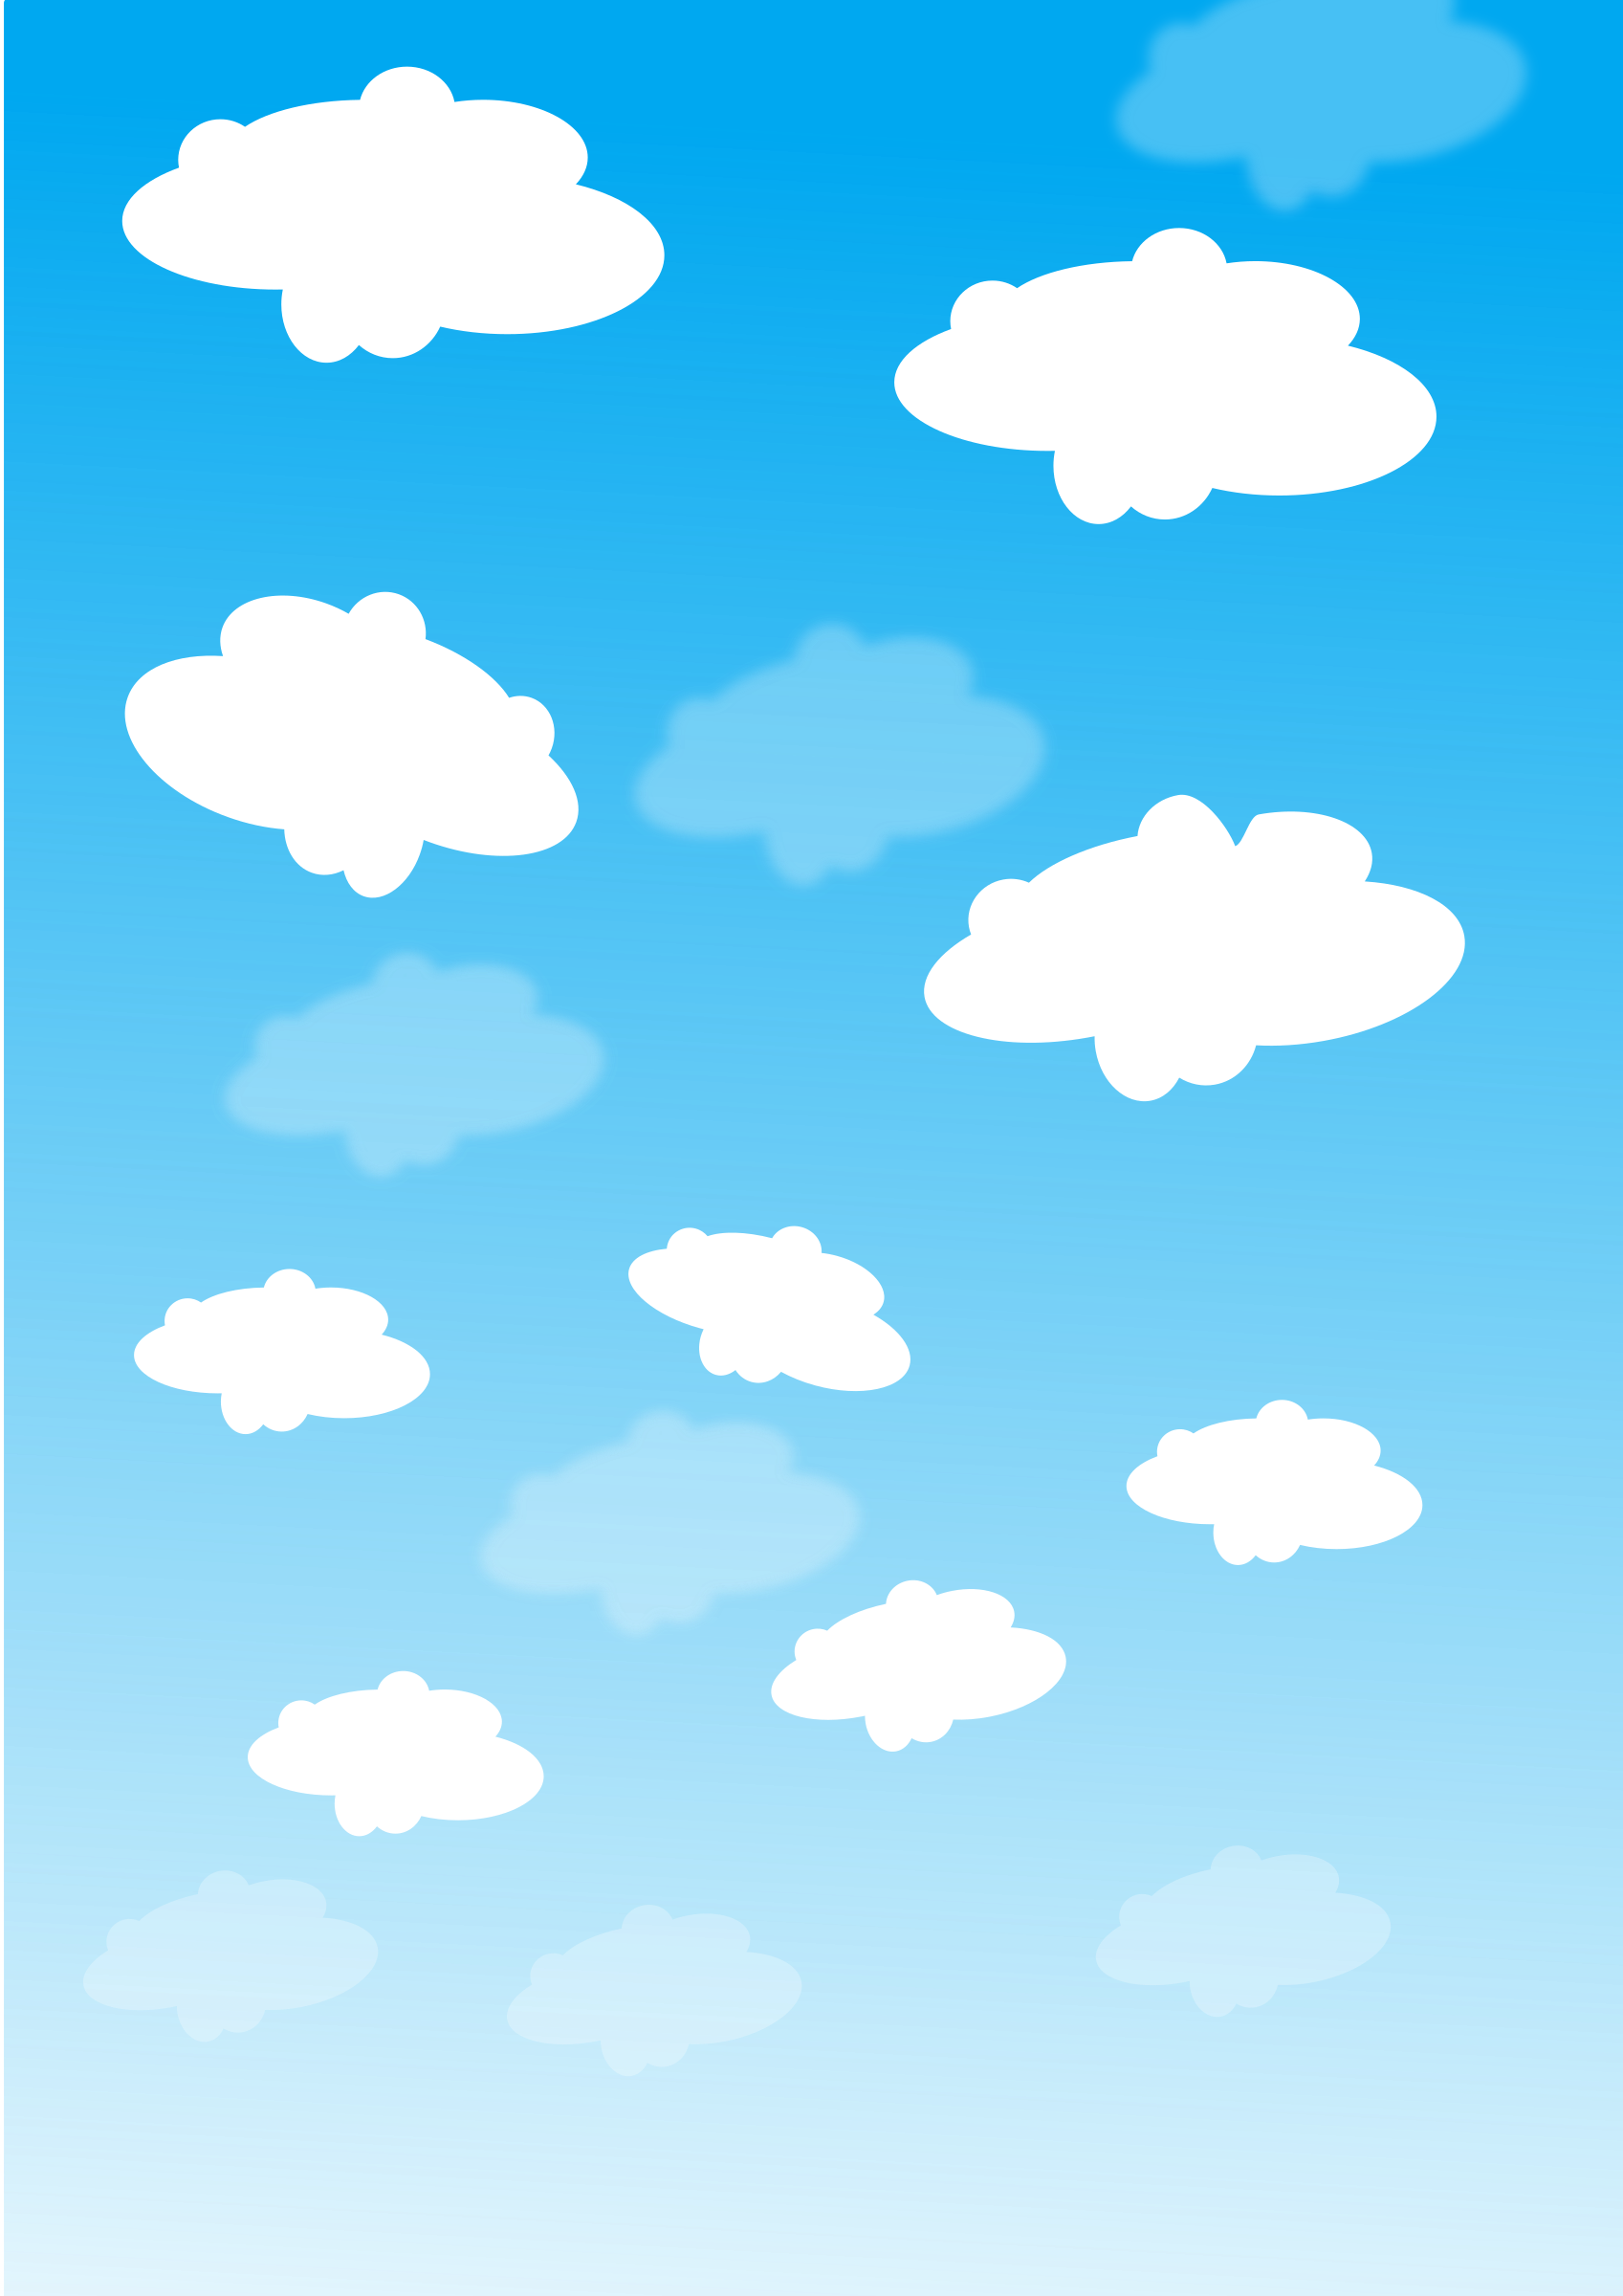 Blue sky with clouds png. Icons free and downloads